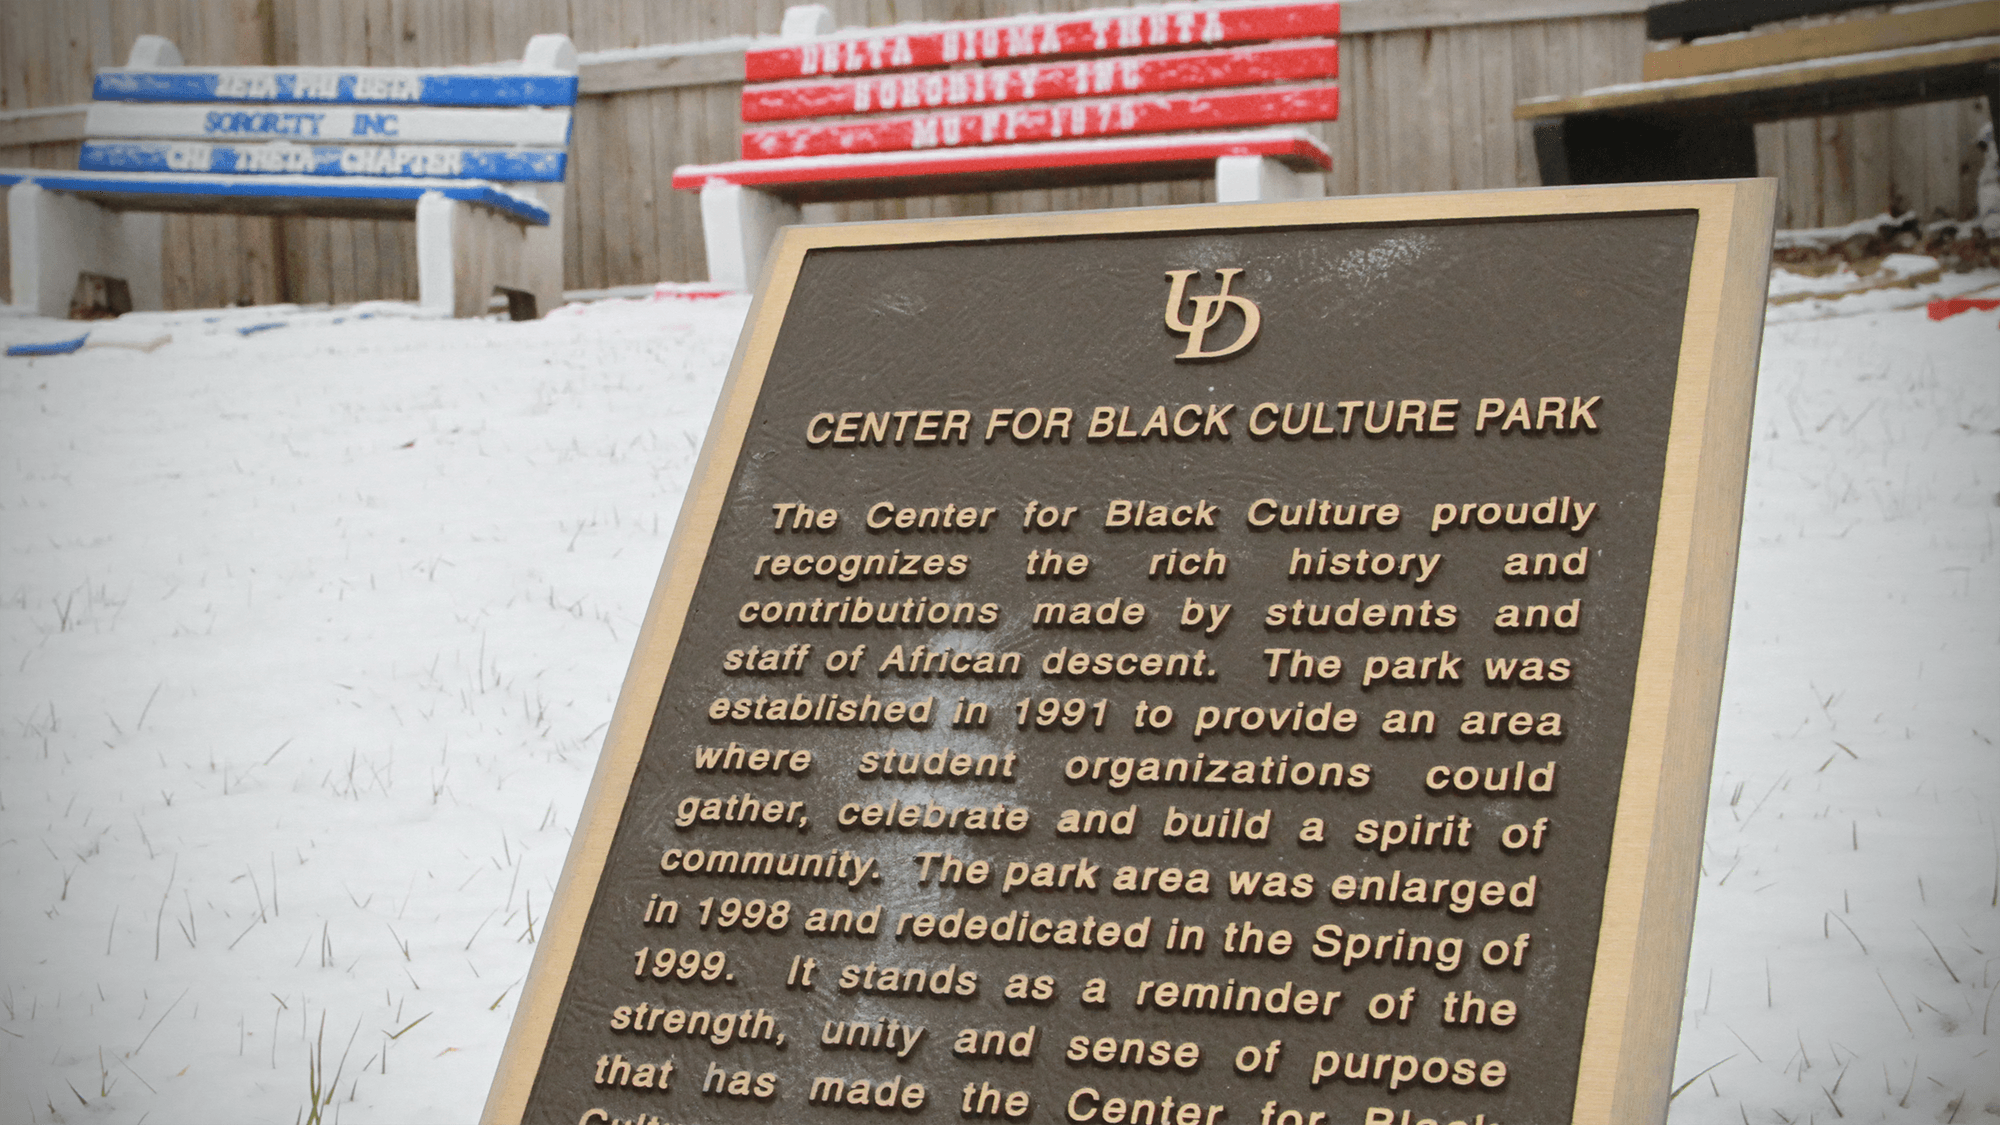 Photograph of Center for Black Culture at University of Delaware